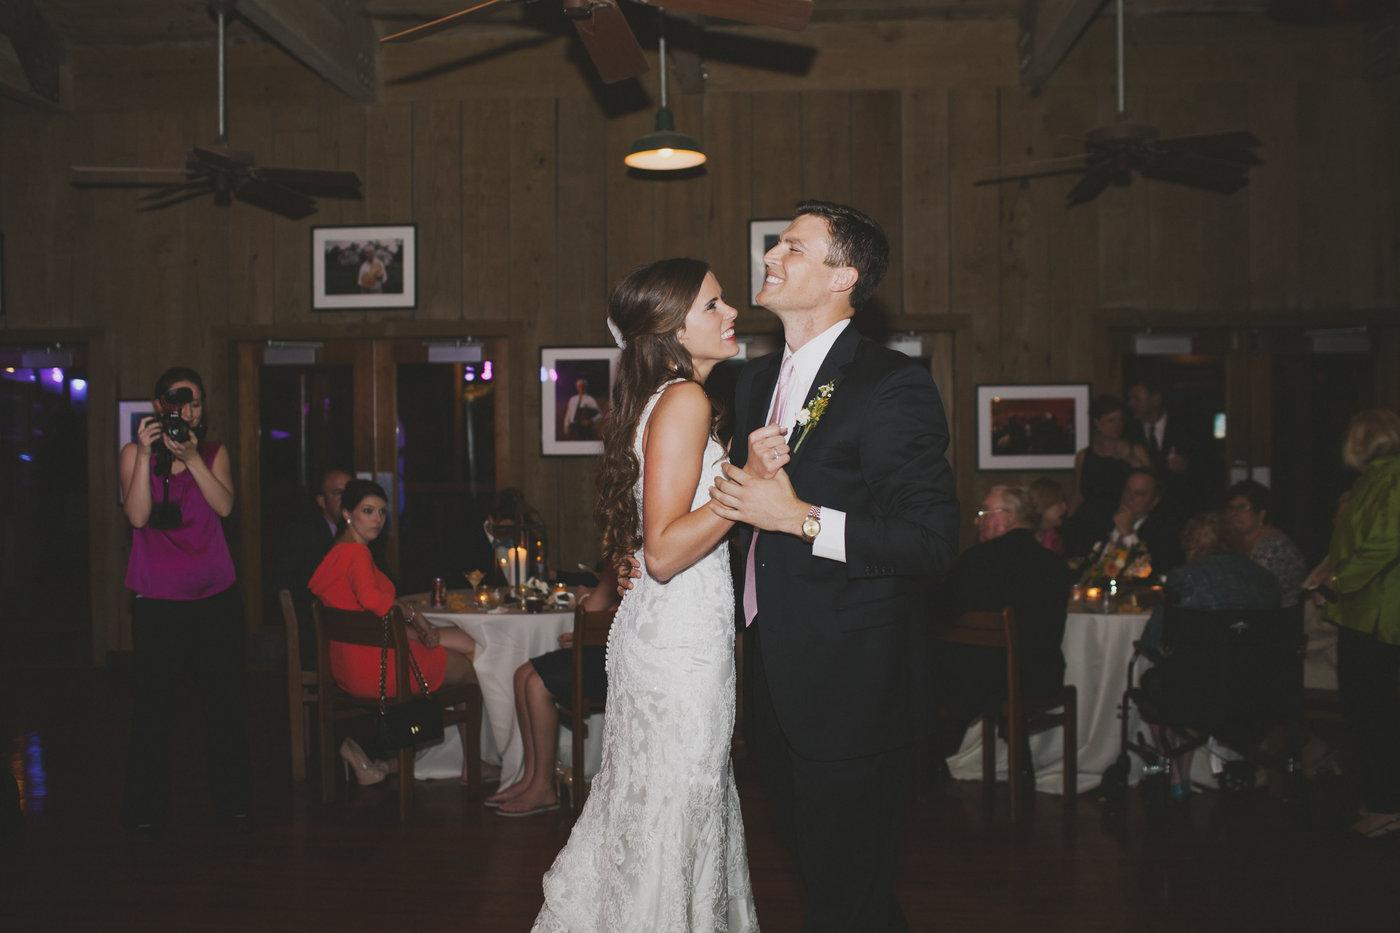 First dance in the Cajun Ballroom. Photo: Caitlin B Photography